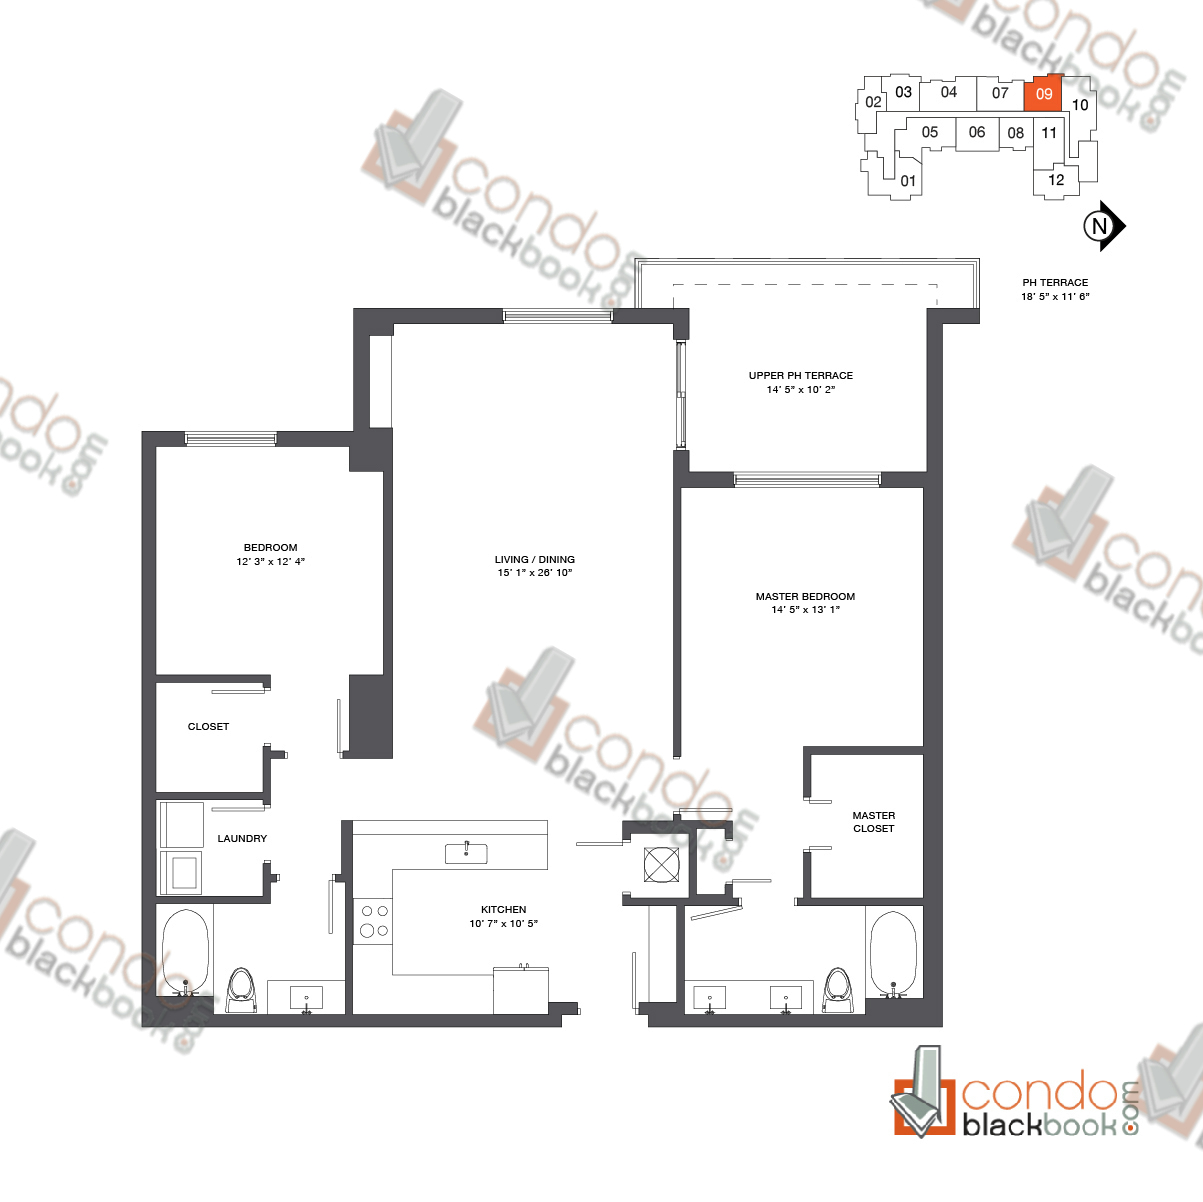 Floor plan for Nine at Mary Brickell Village Brickell Miami, model Penthouse 09, line 09, 2/2 bedrooms, 1,434 sq ft